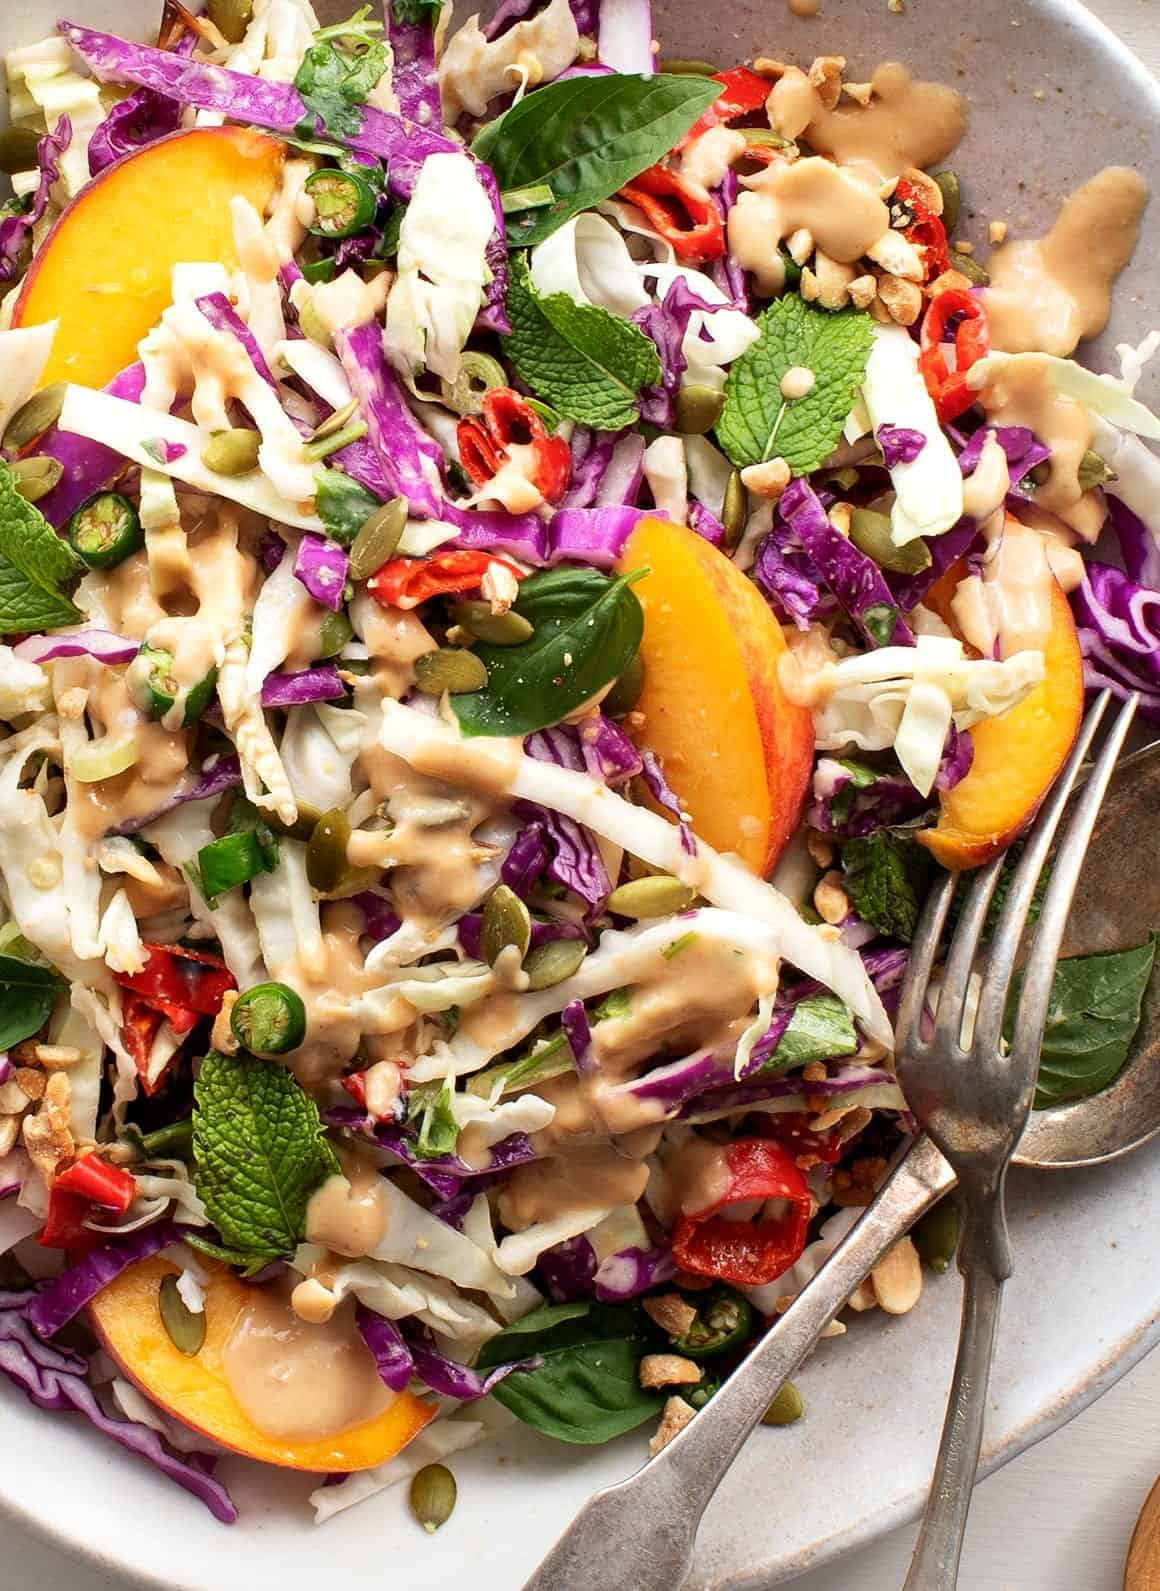 Spicy Ginger Miso Slaw with Peaches